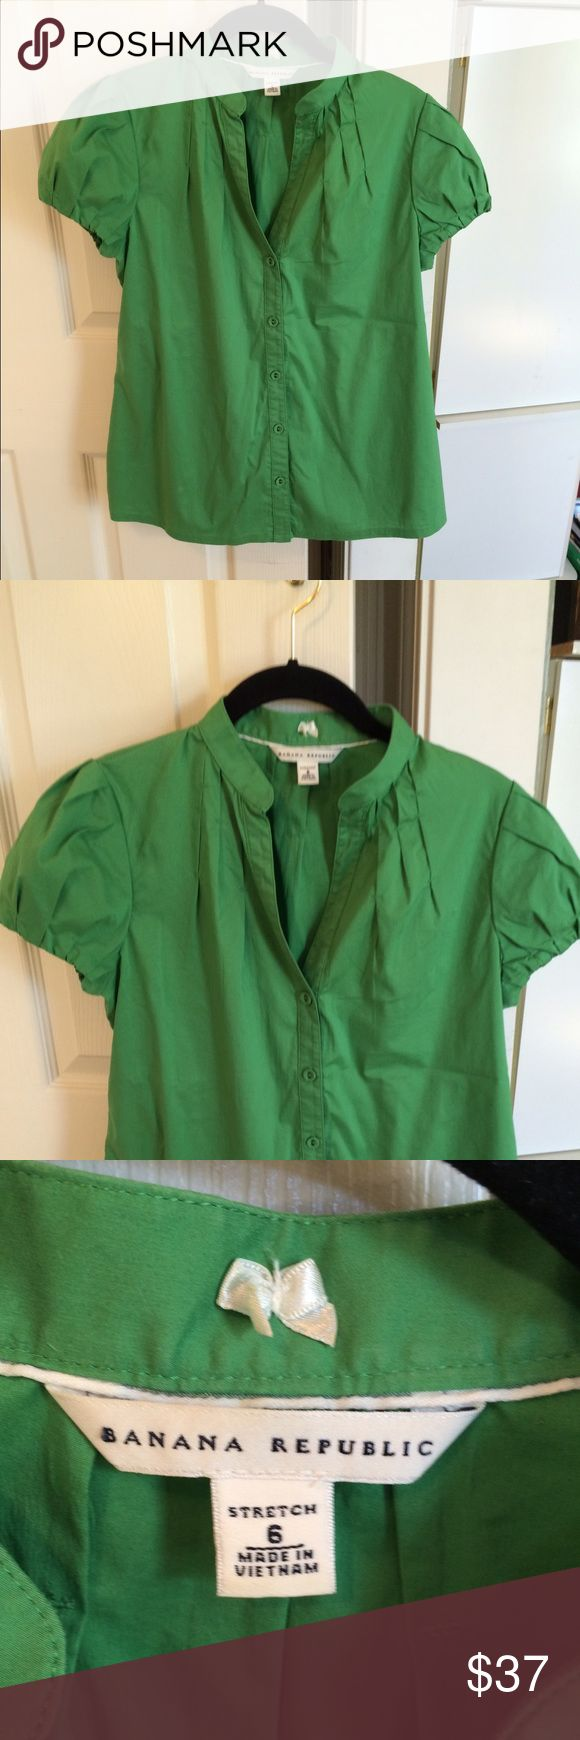 Banana Republic Green Short Sleeve Top Banana Republic Green Short Sleeve Top.  Size 6, Good Pre Owned Condition, Very Clean, No Holes or Stains. 100% Smoke and Pet Free Home. Thanks for looking!!! Banana Republic Tops Blouses